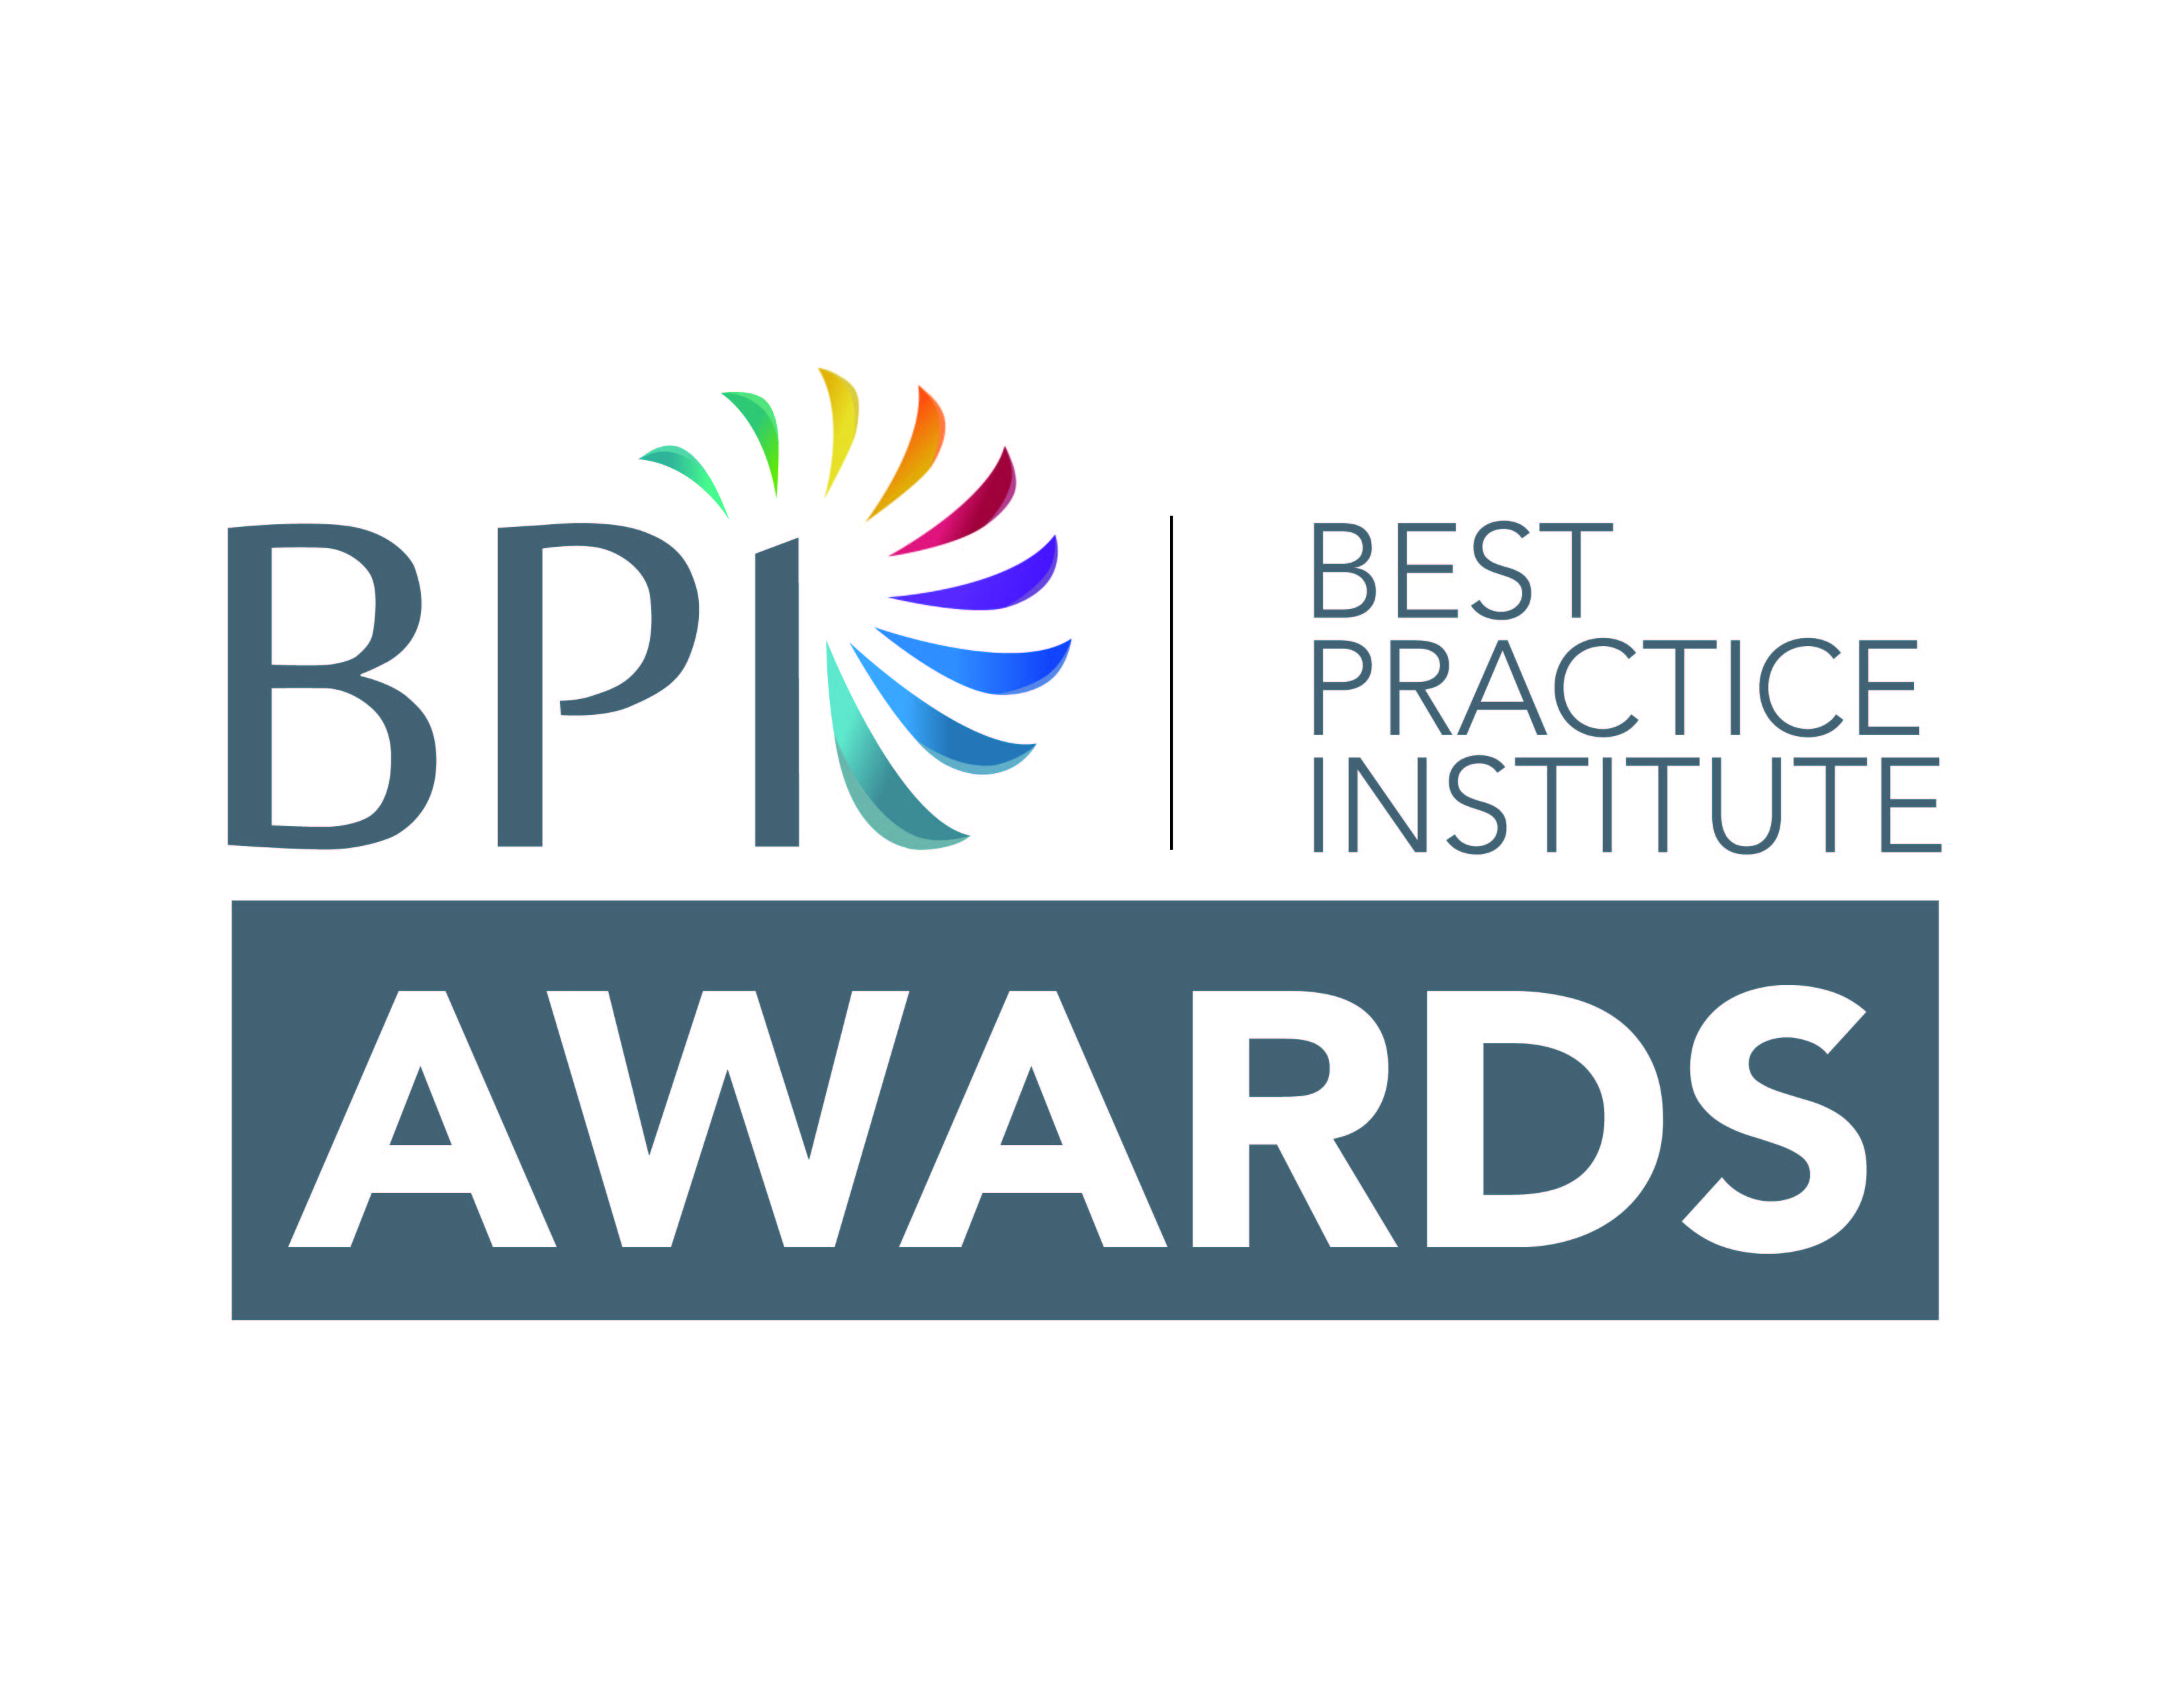 Best Practice Awards 2017 Inviting Nominees From All Over